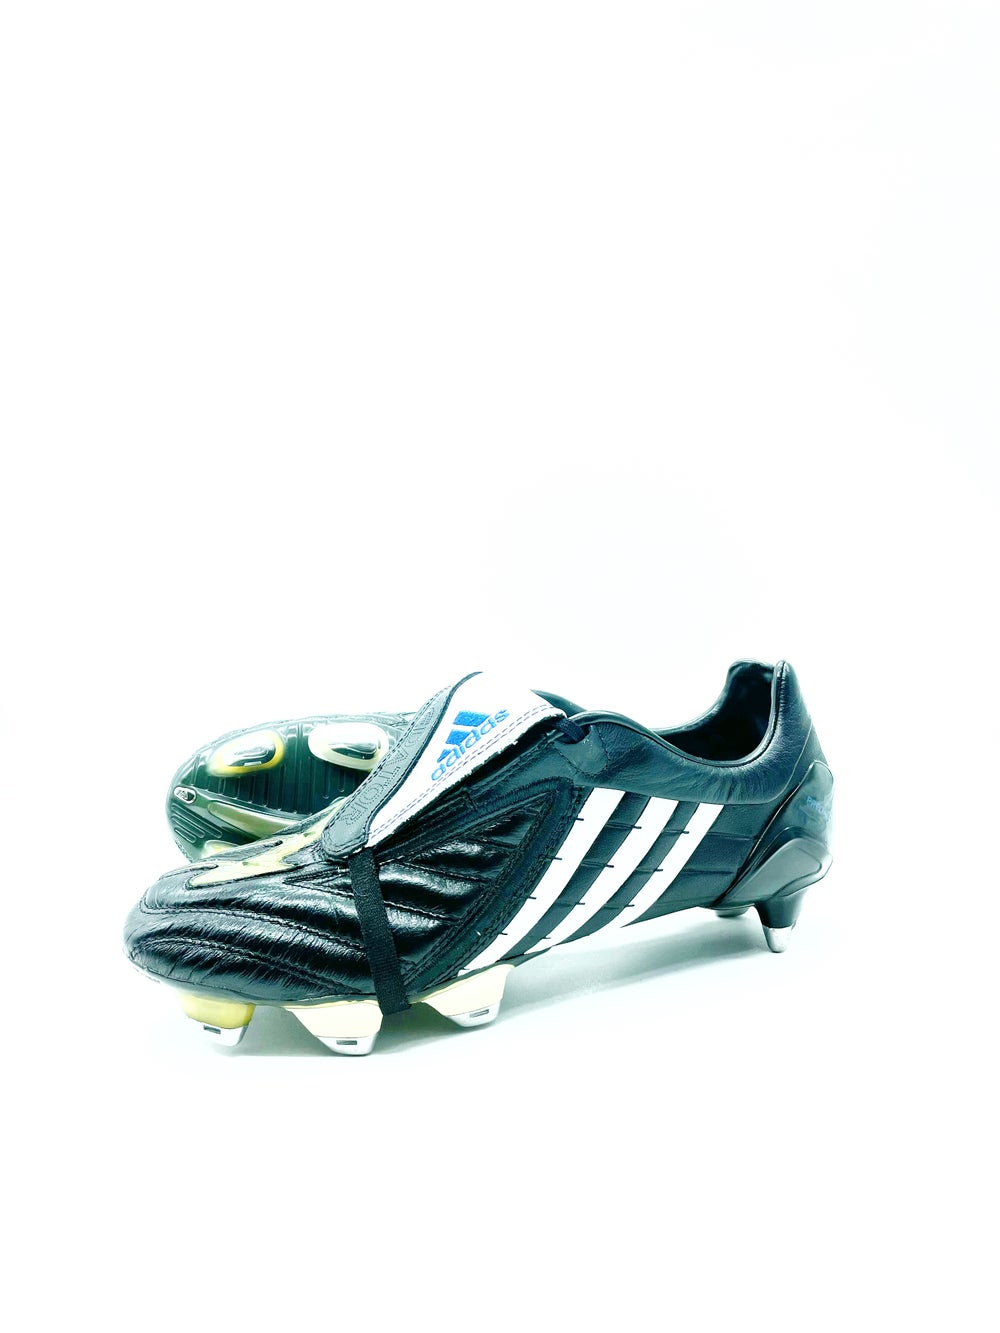 Image of Adidas Predator Powerswerve SG black